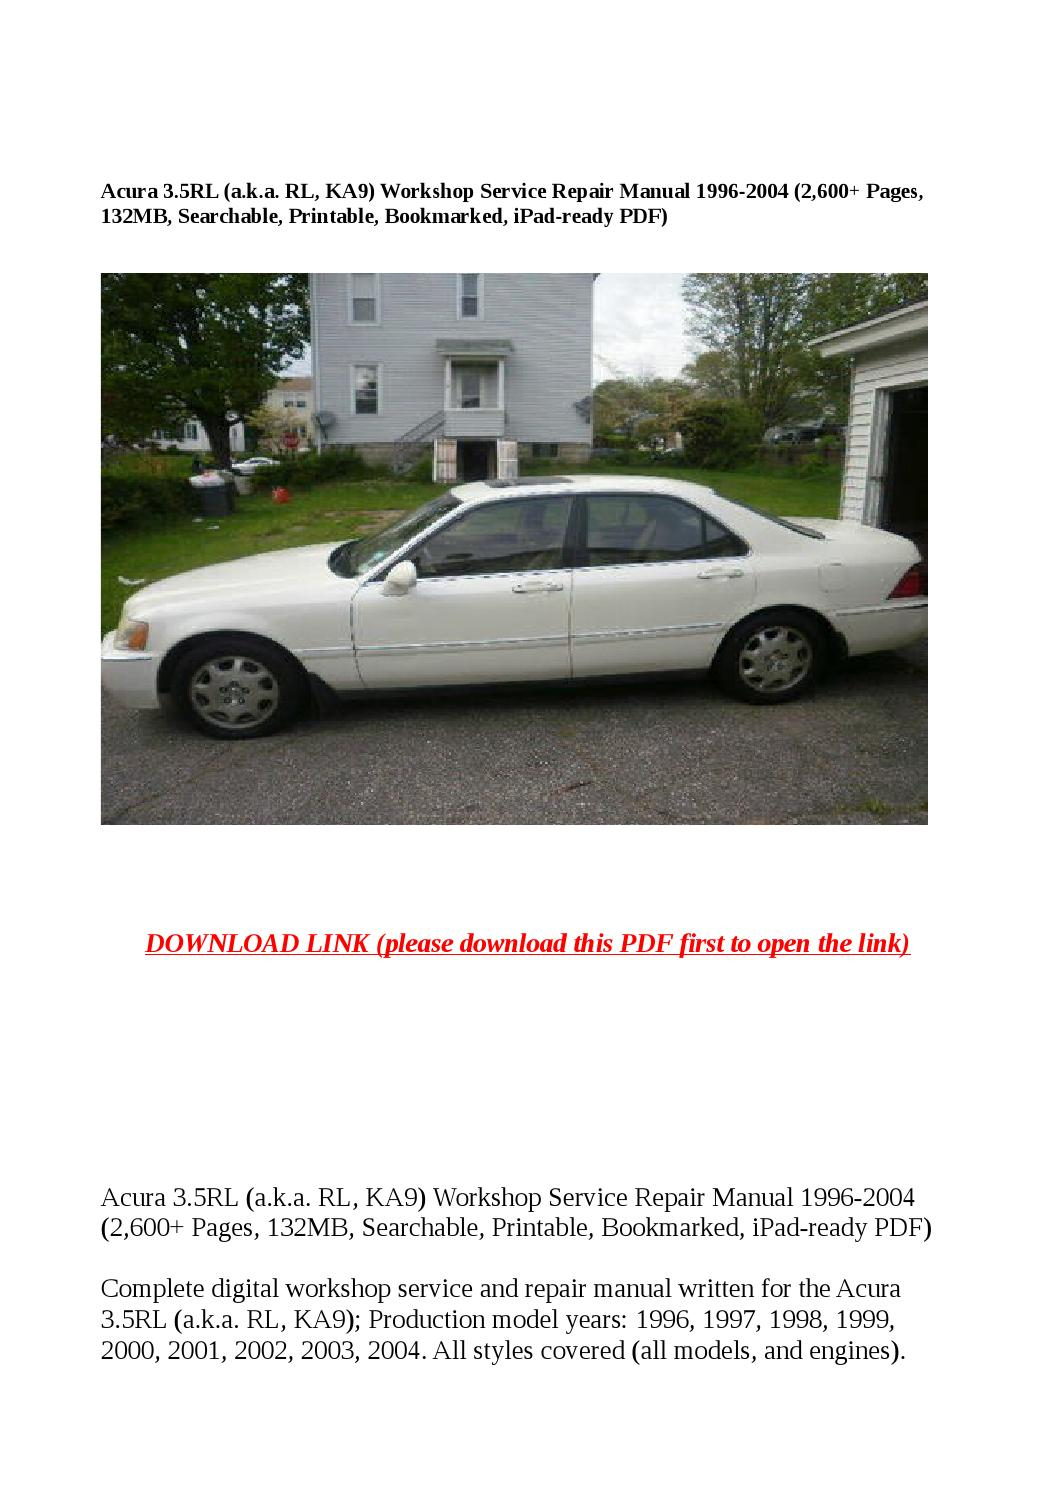 Acura 3 5rl (a k a rl, ka9) workshop service repair manual 1996 2004 (2,600  pages, 132mb, searchable by steve - issuu